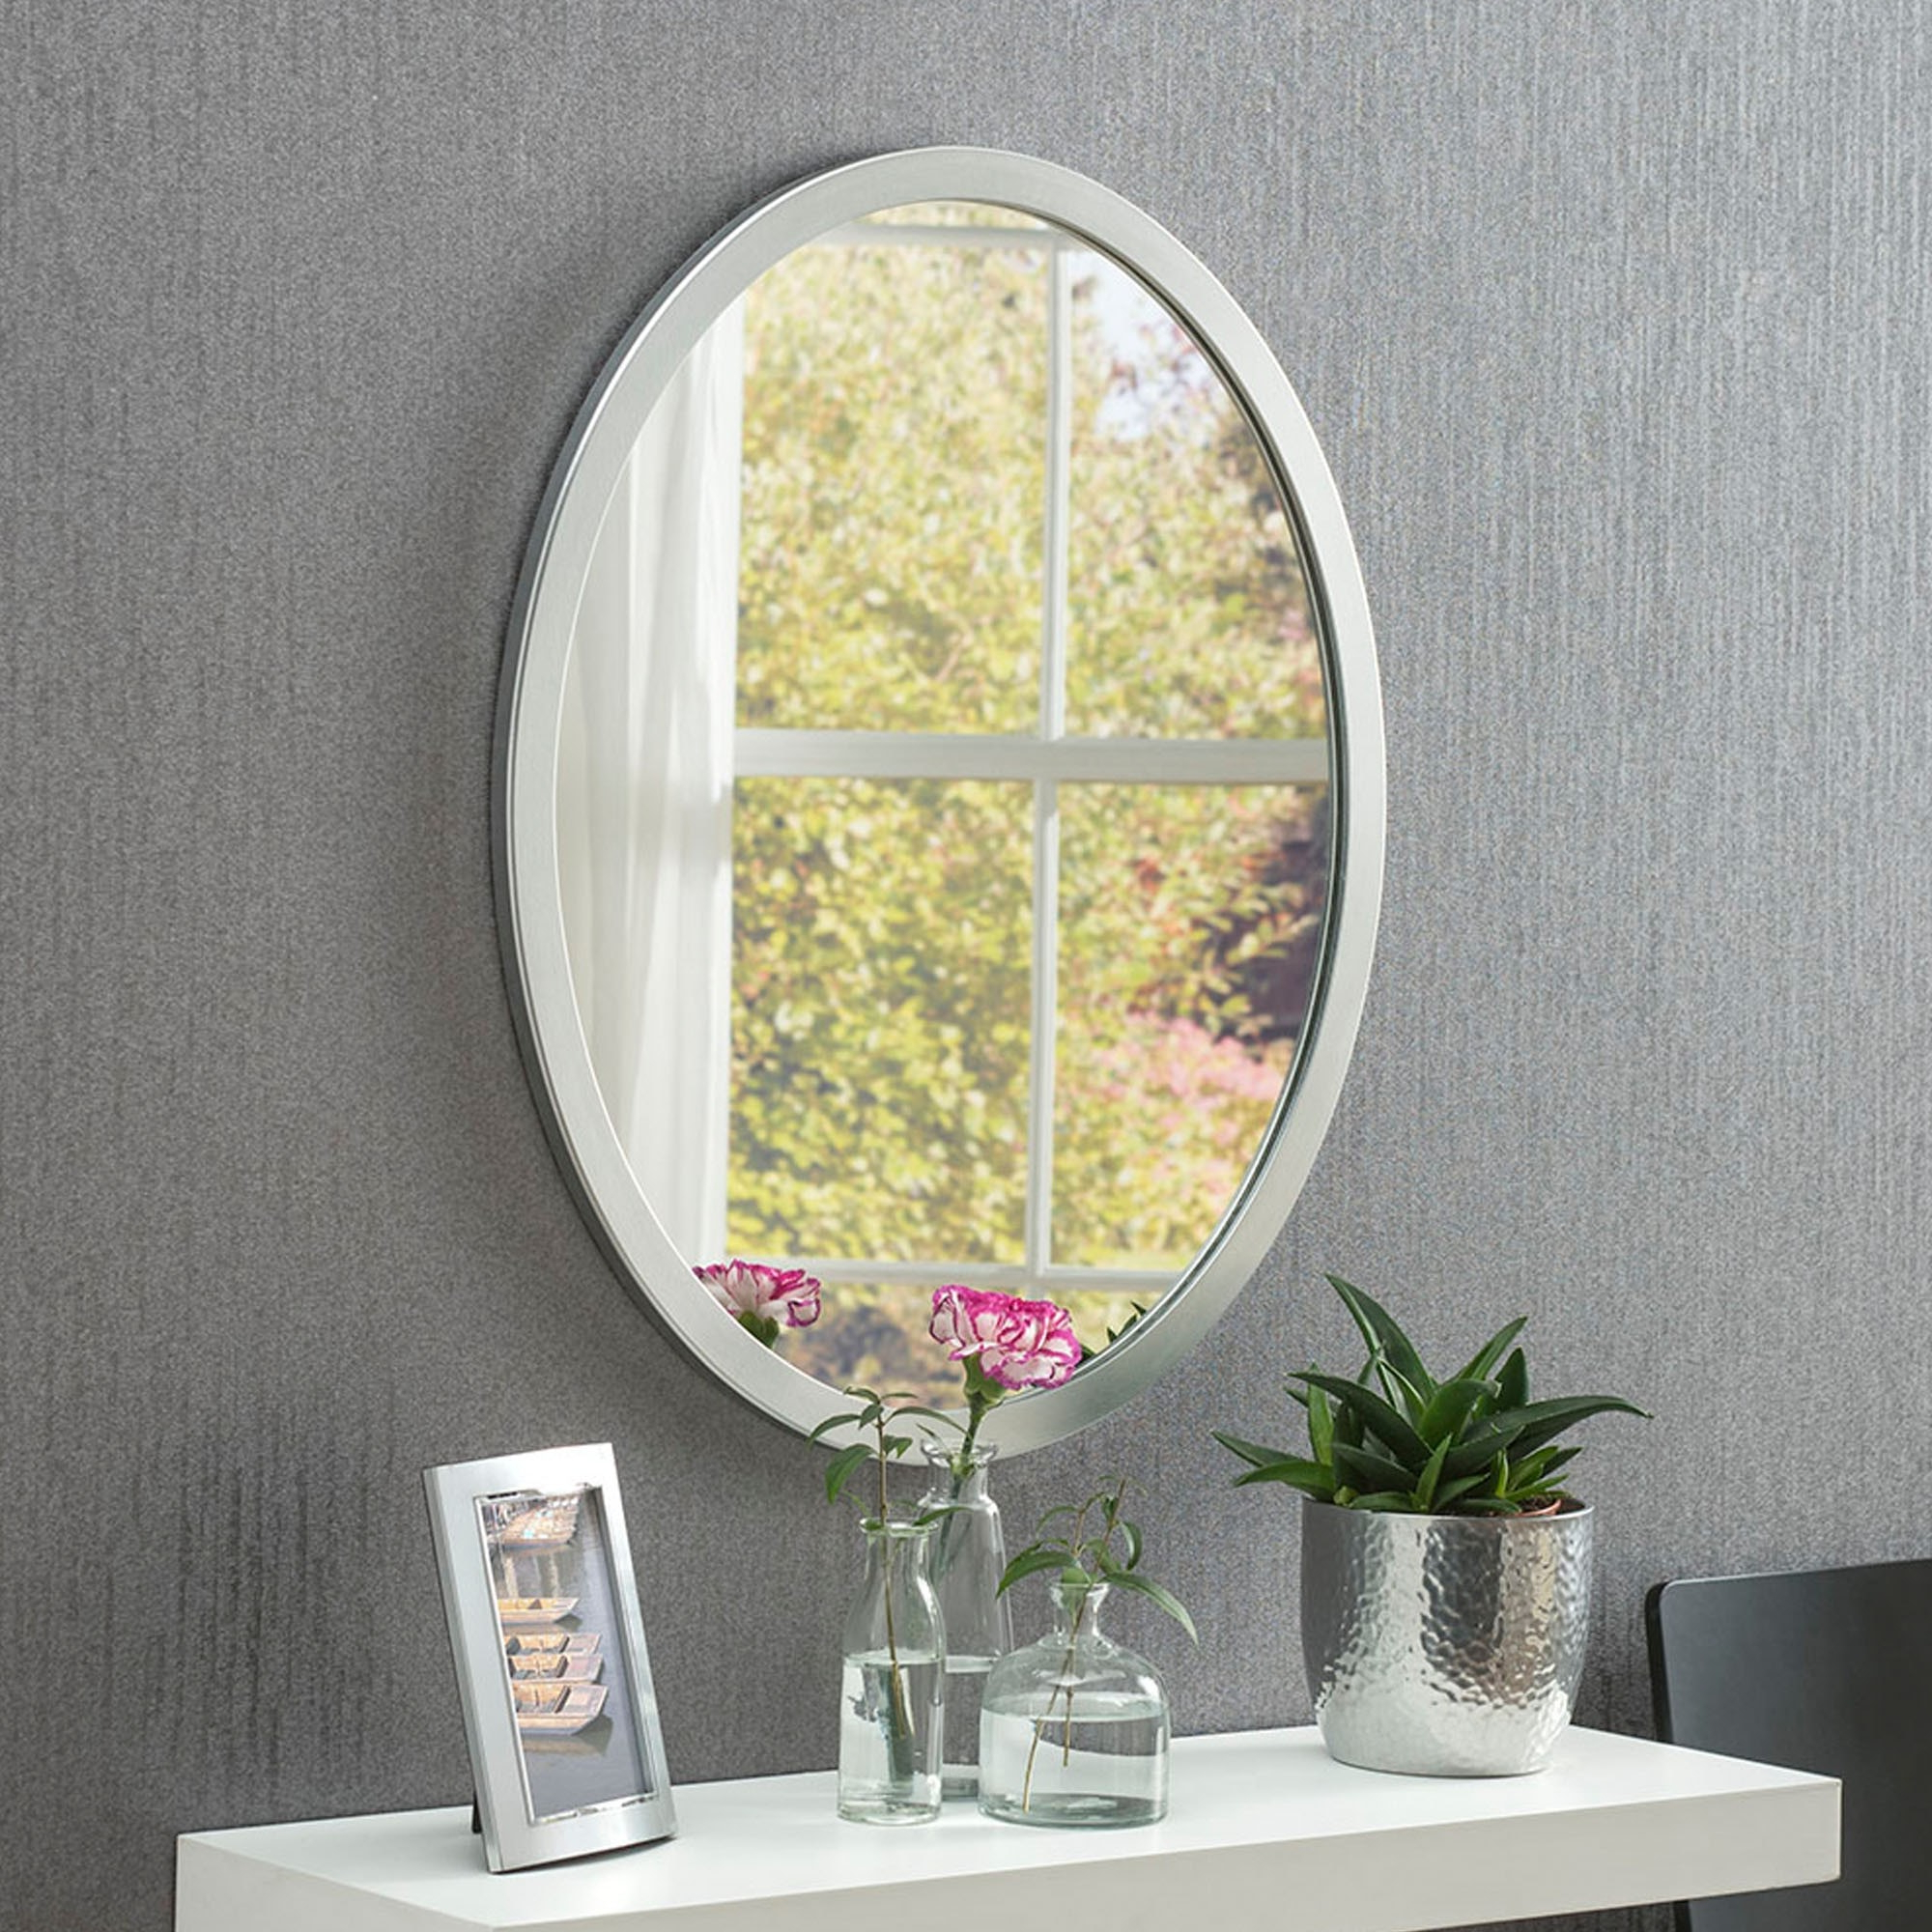 Well Liked Classic Oval Silver Wall Mirror Intended For Classic Wall Mirrors (View 13 of 20)